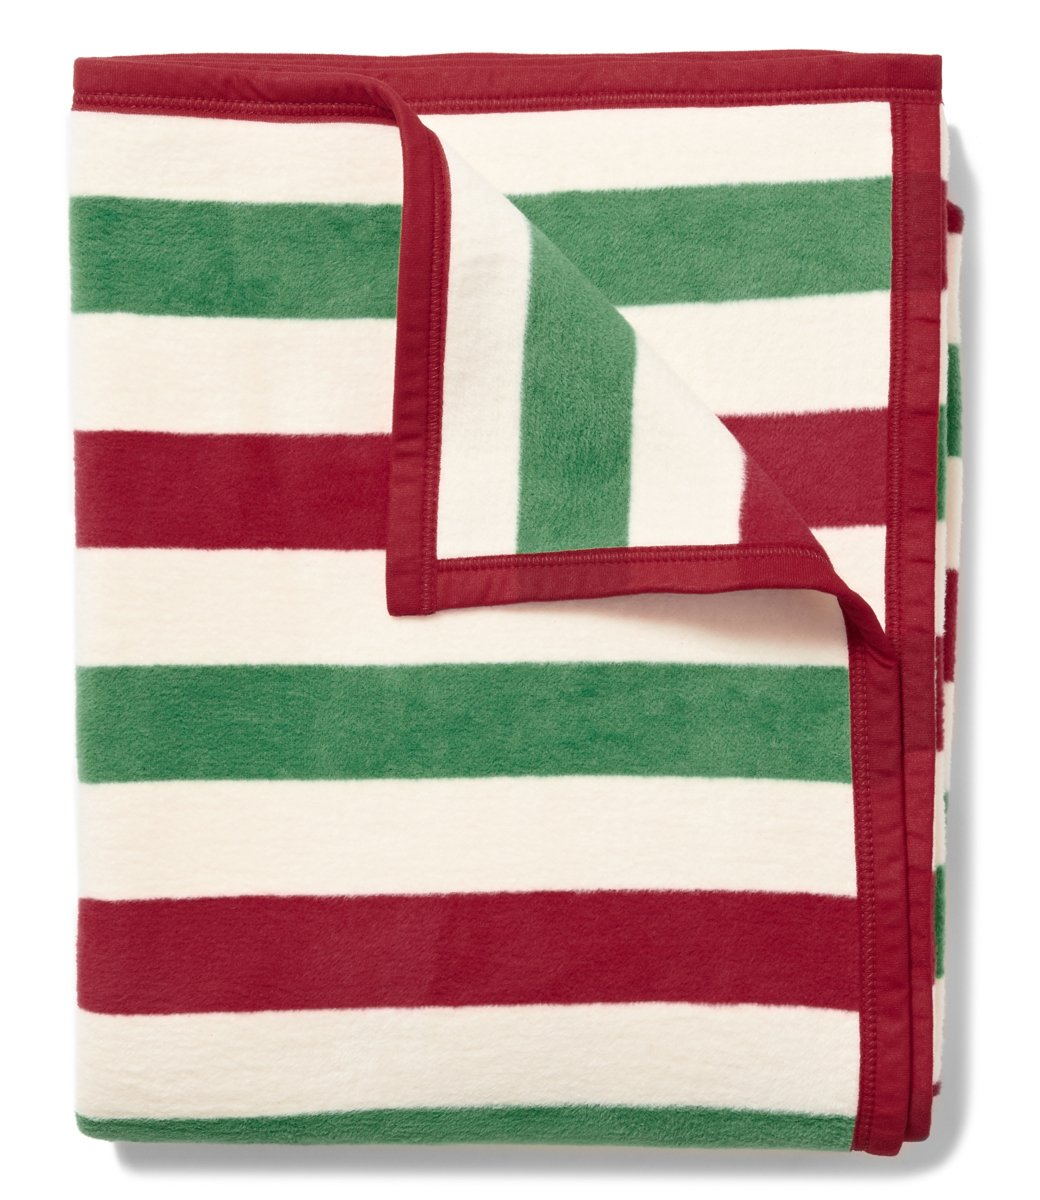 Chappywrap Holiday Blankets